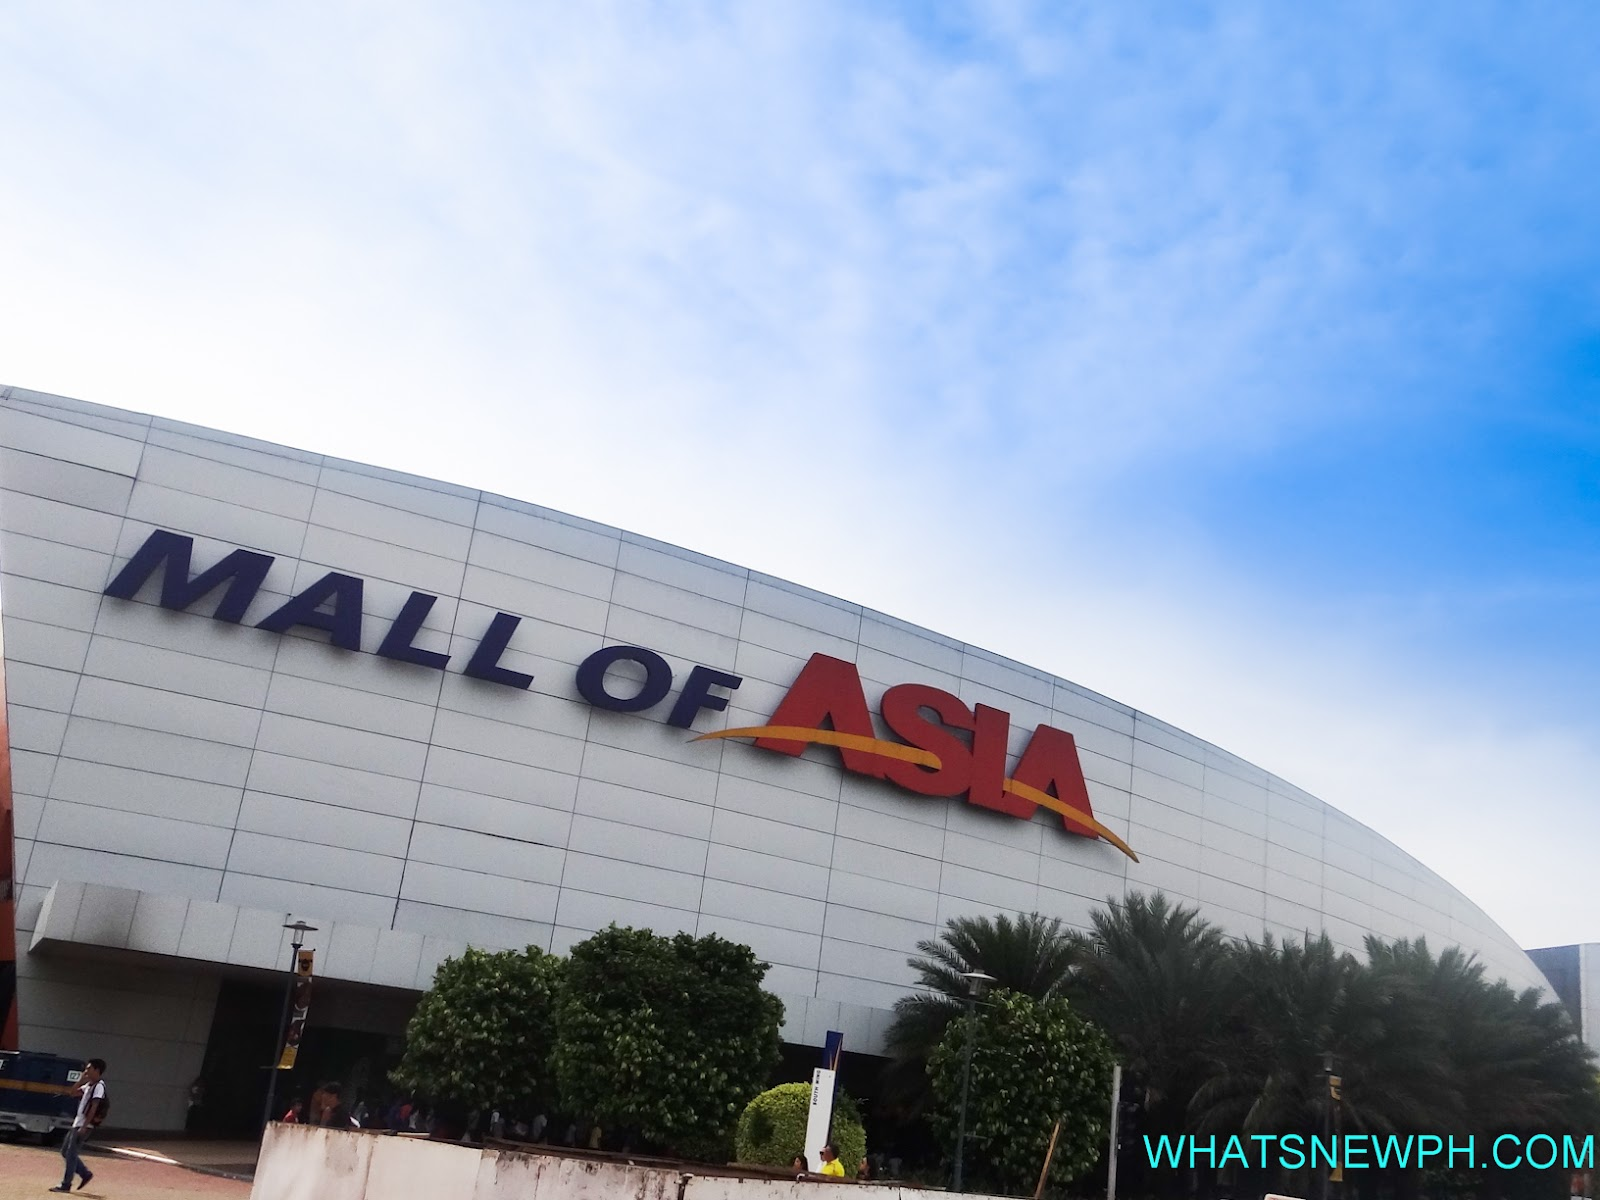 mall of asia map guide